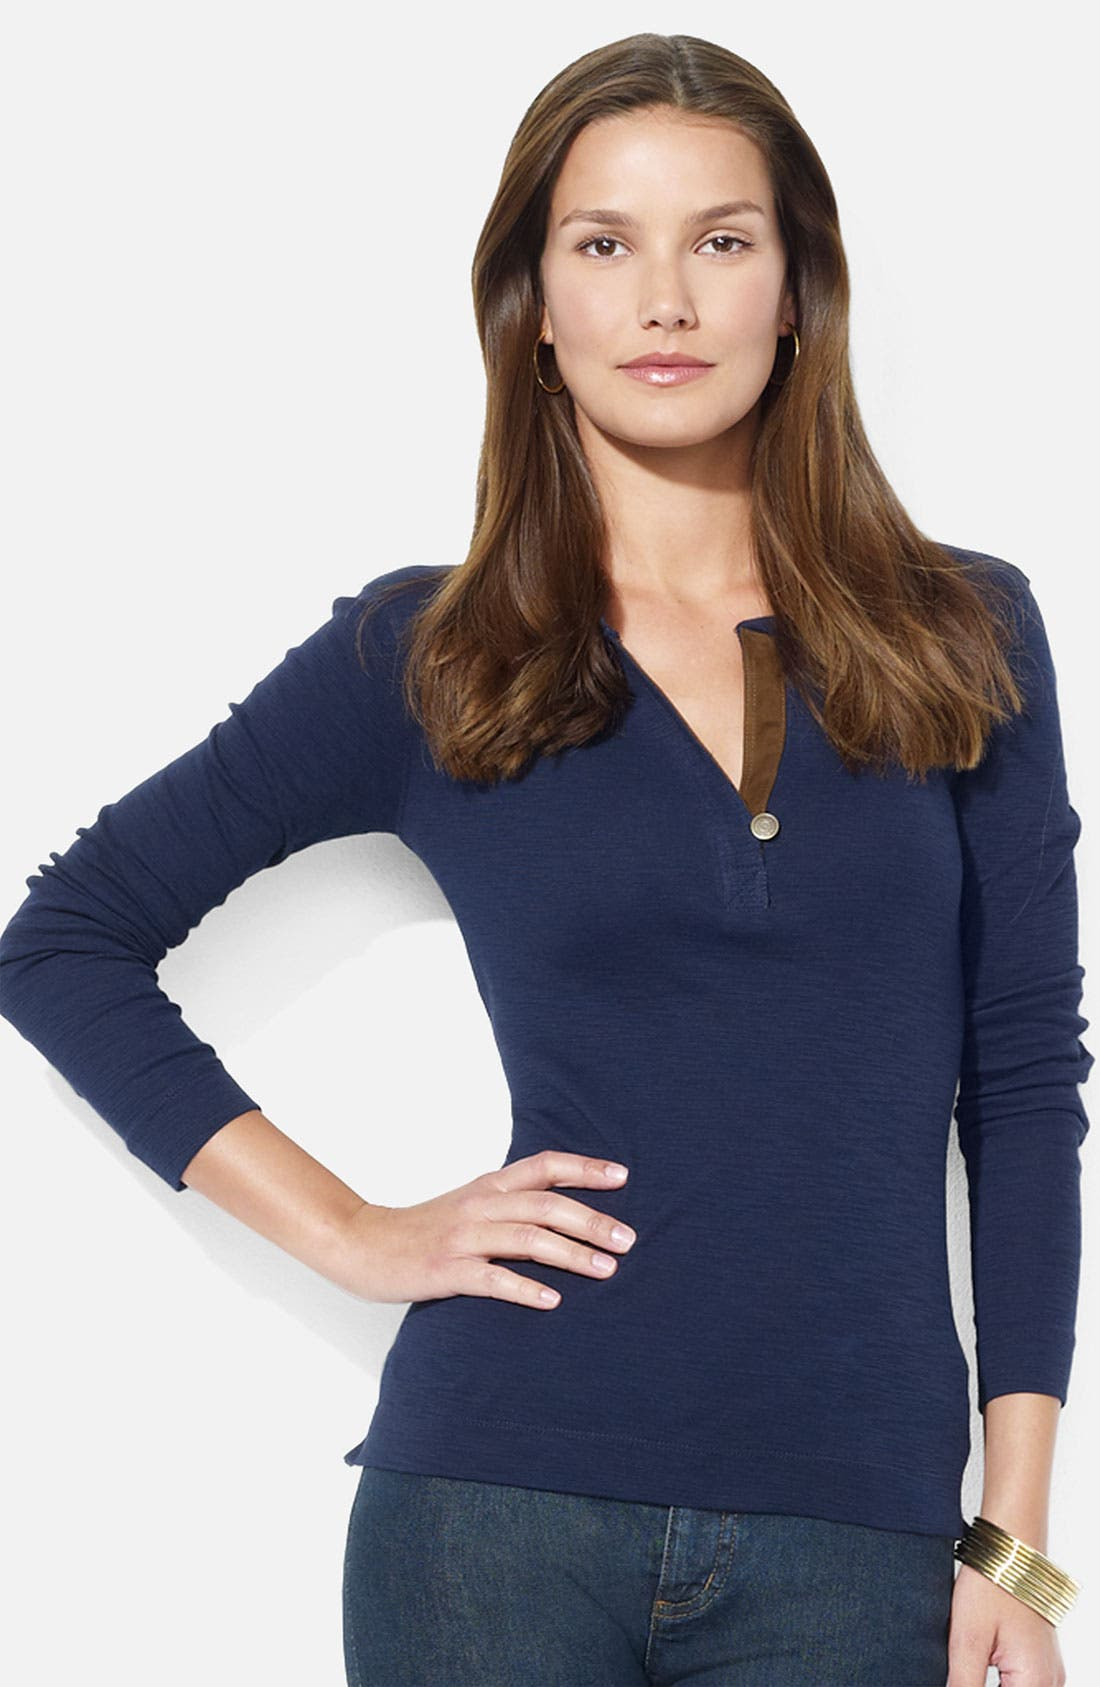 Alternate Image 1 Selected - Lauren Ralph Lauren One Button Henley Tee (Petite) (Online Exclusive)